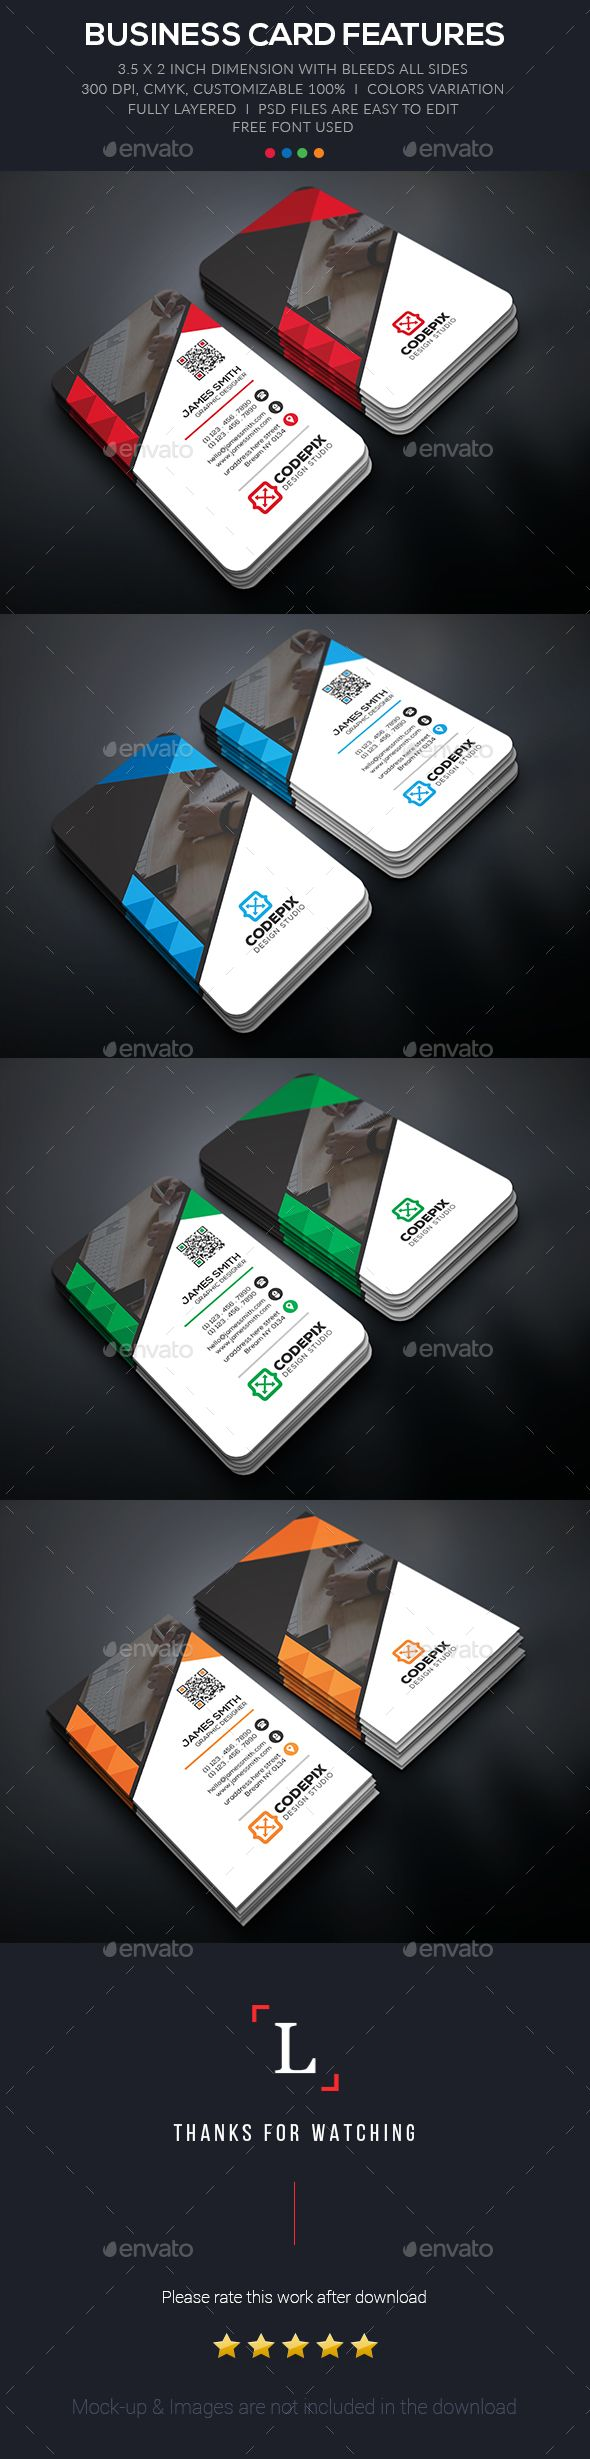 22 Best Business Card Ideas Images On Pinterest Card Ideas